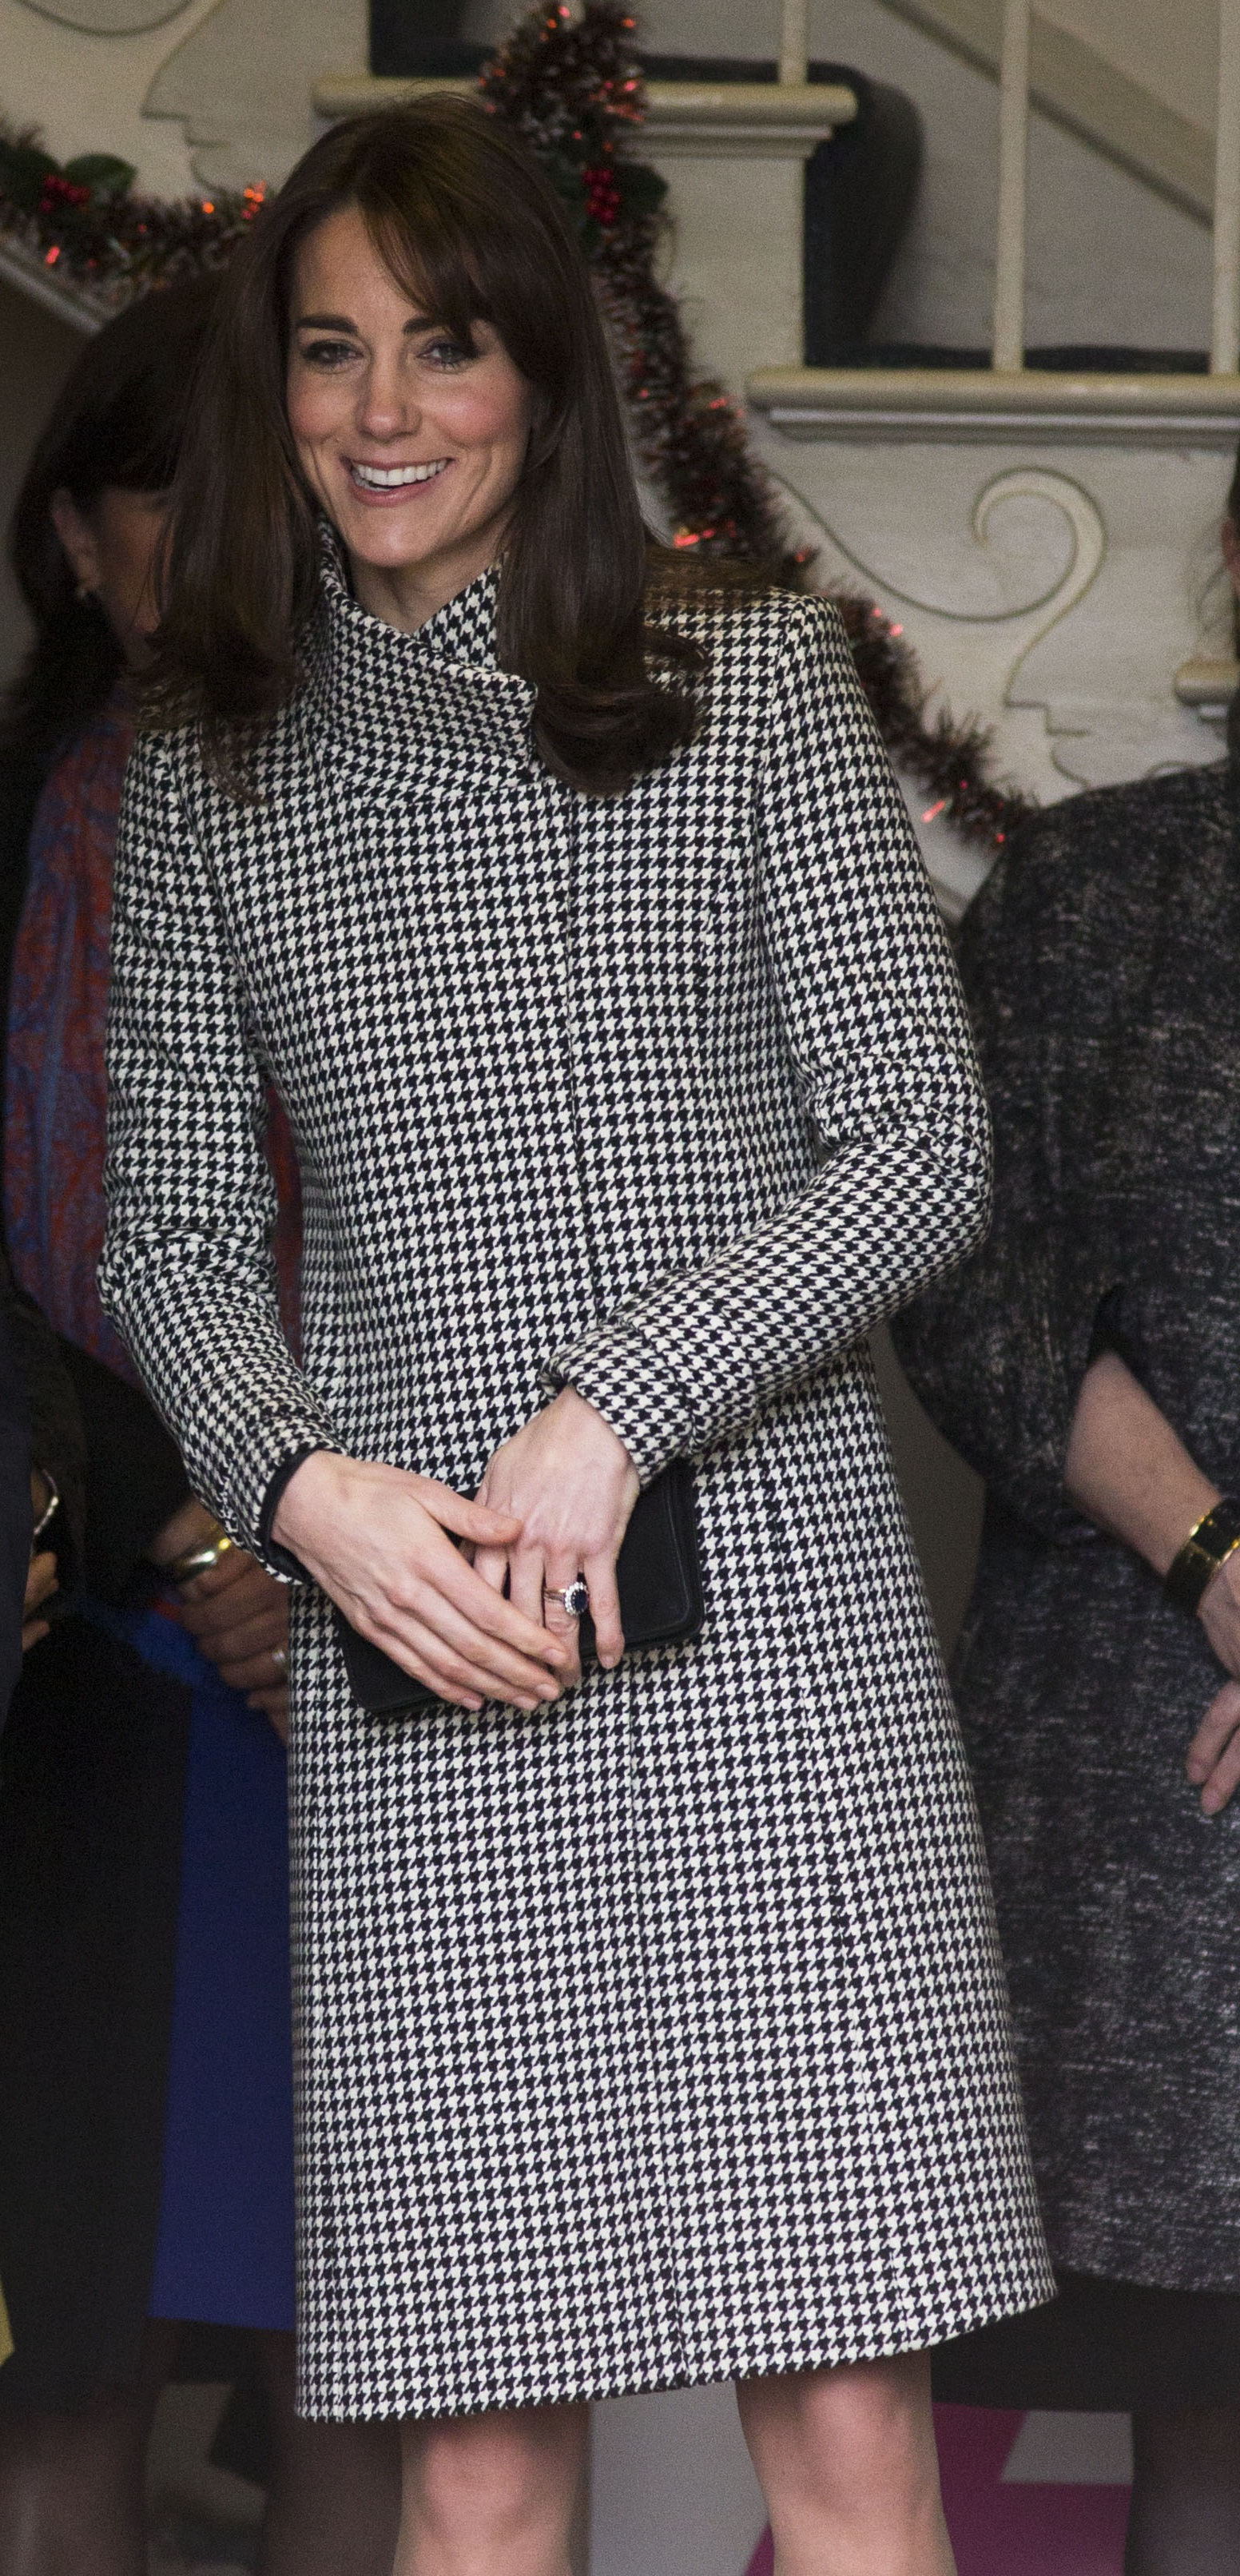 Image licensed to i-Images Picture Agency. 10/12/2015. Warminster, United Kingdom. The Duchess of Cambridge leaving the Action on Addiction Centre for Addiction Treatment Studies in Warminster, Wiltshire, United Kingdom. Picture by Stephen Lock / i-Images